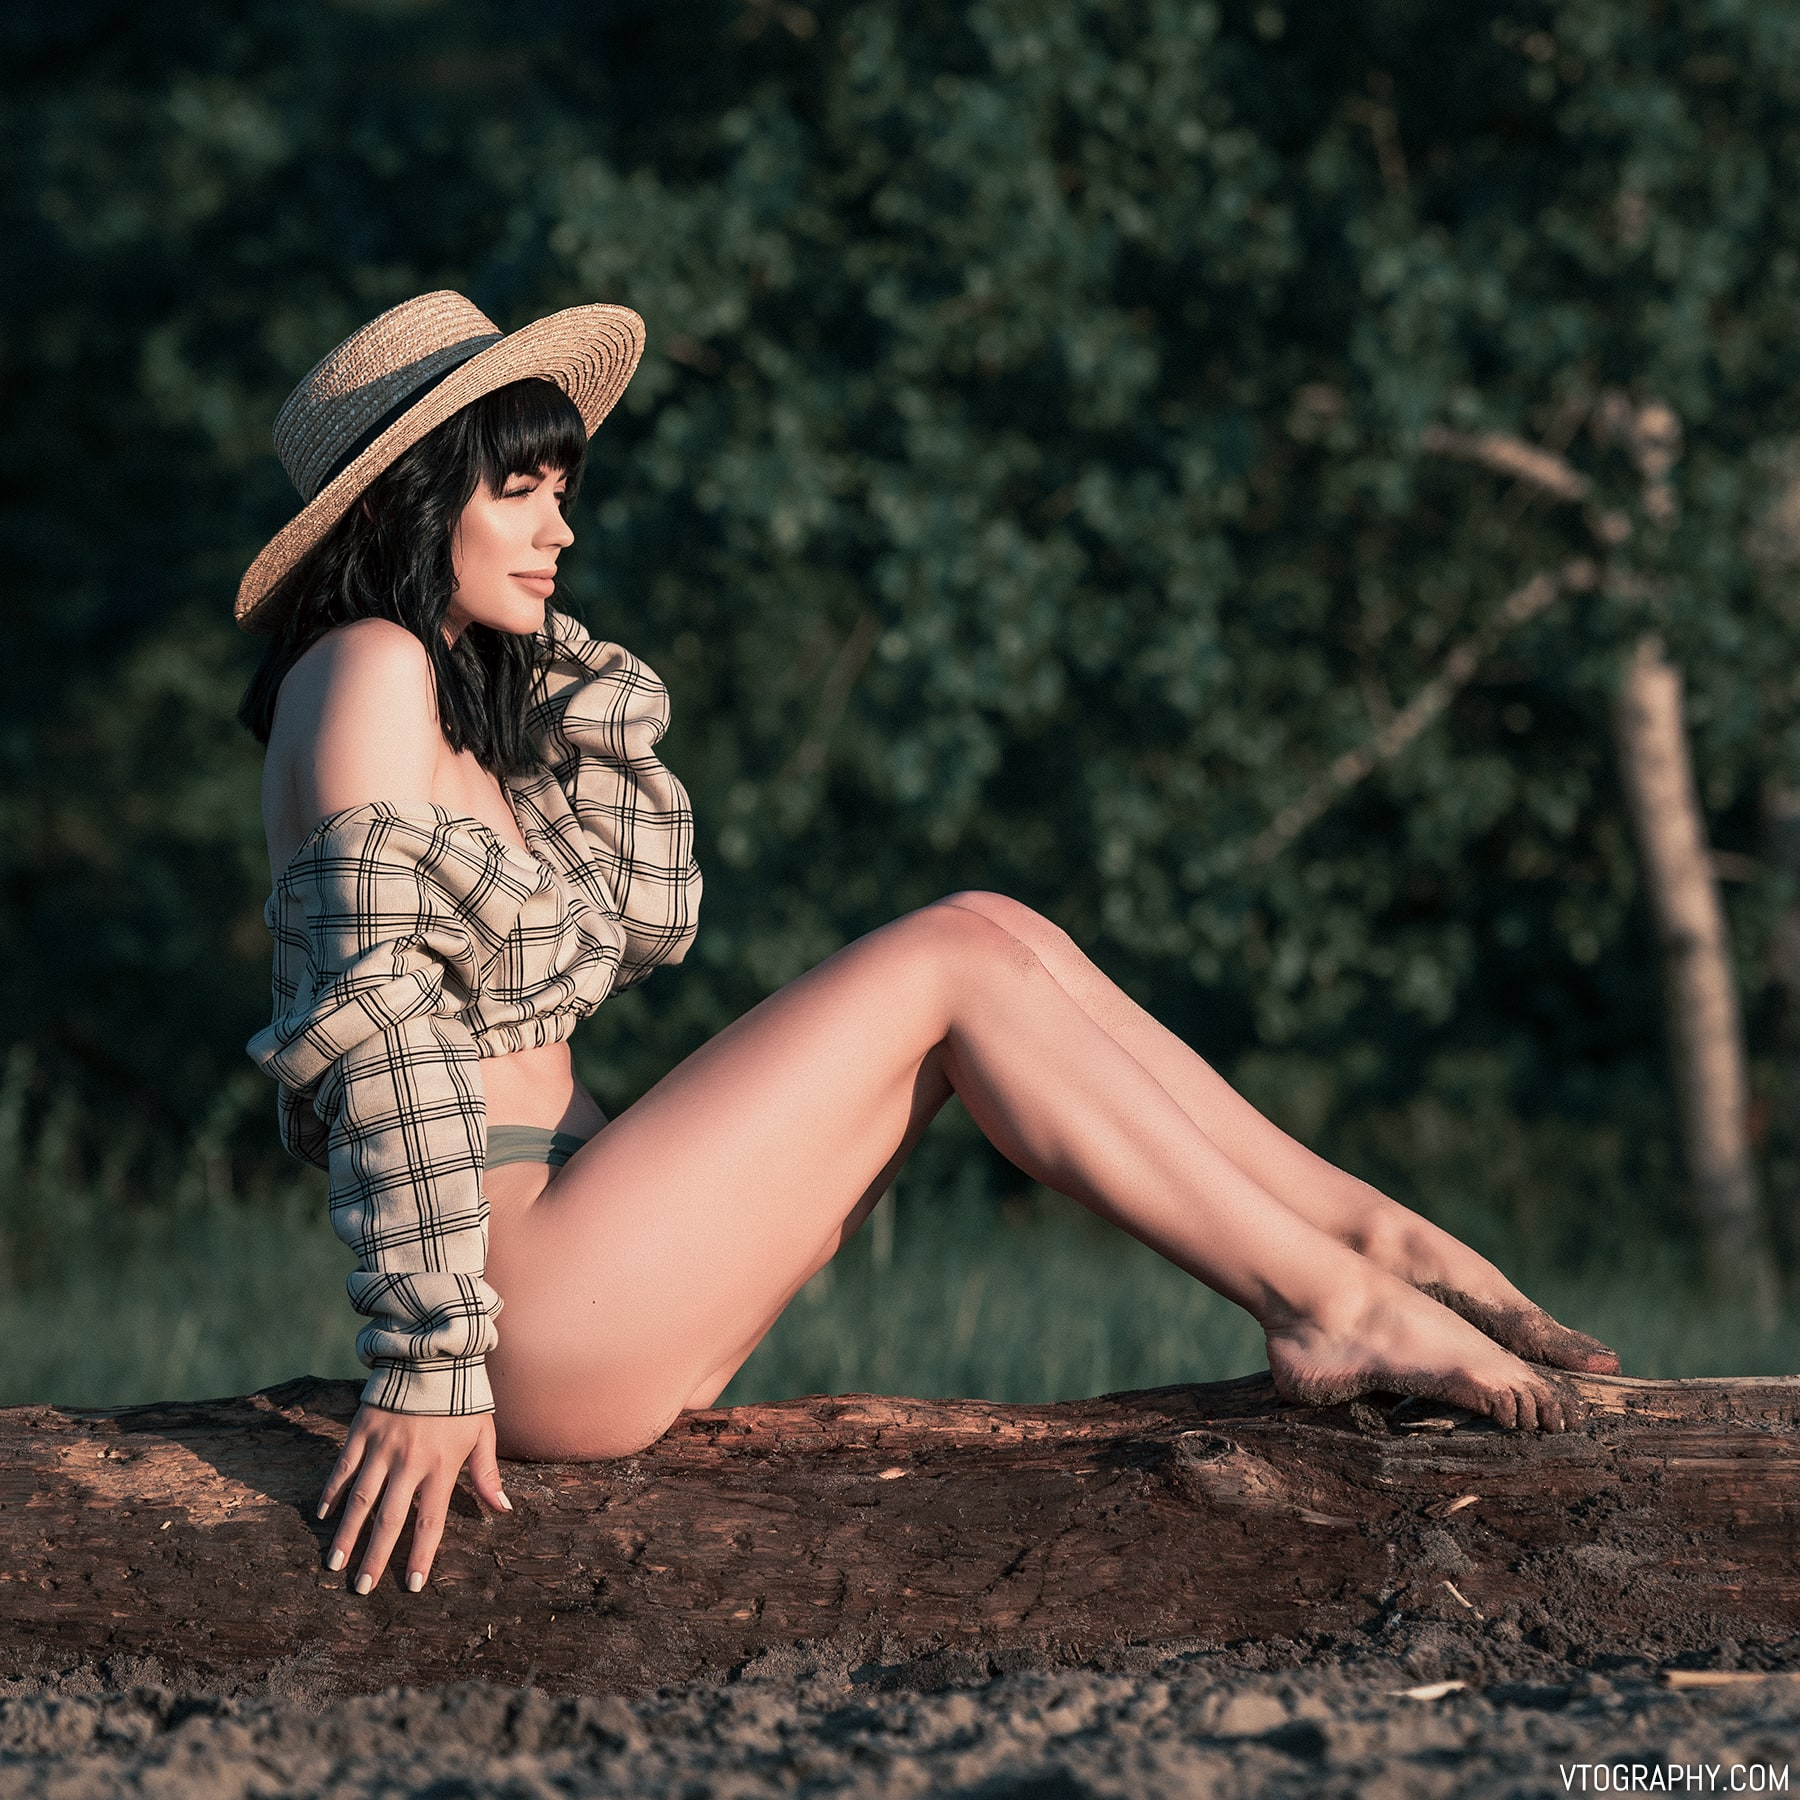 Sitting on a log, wearing a hat